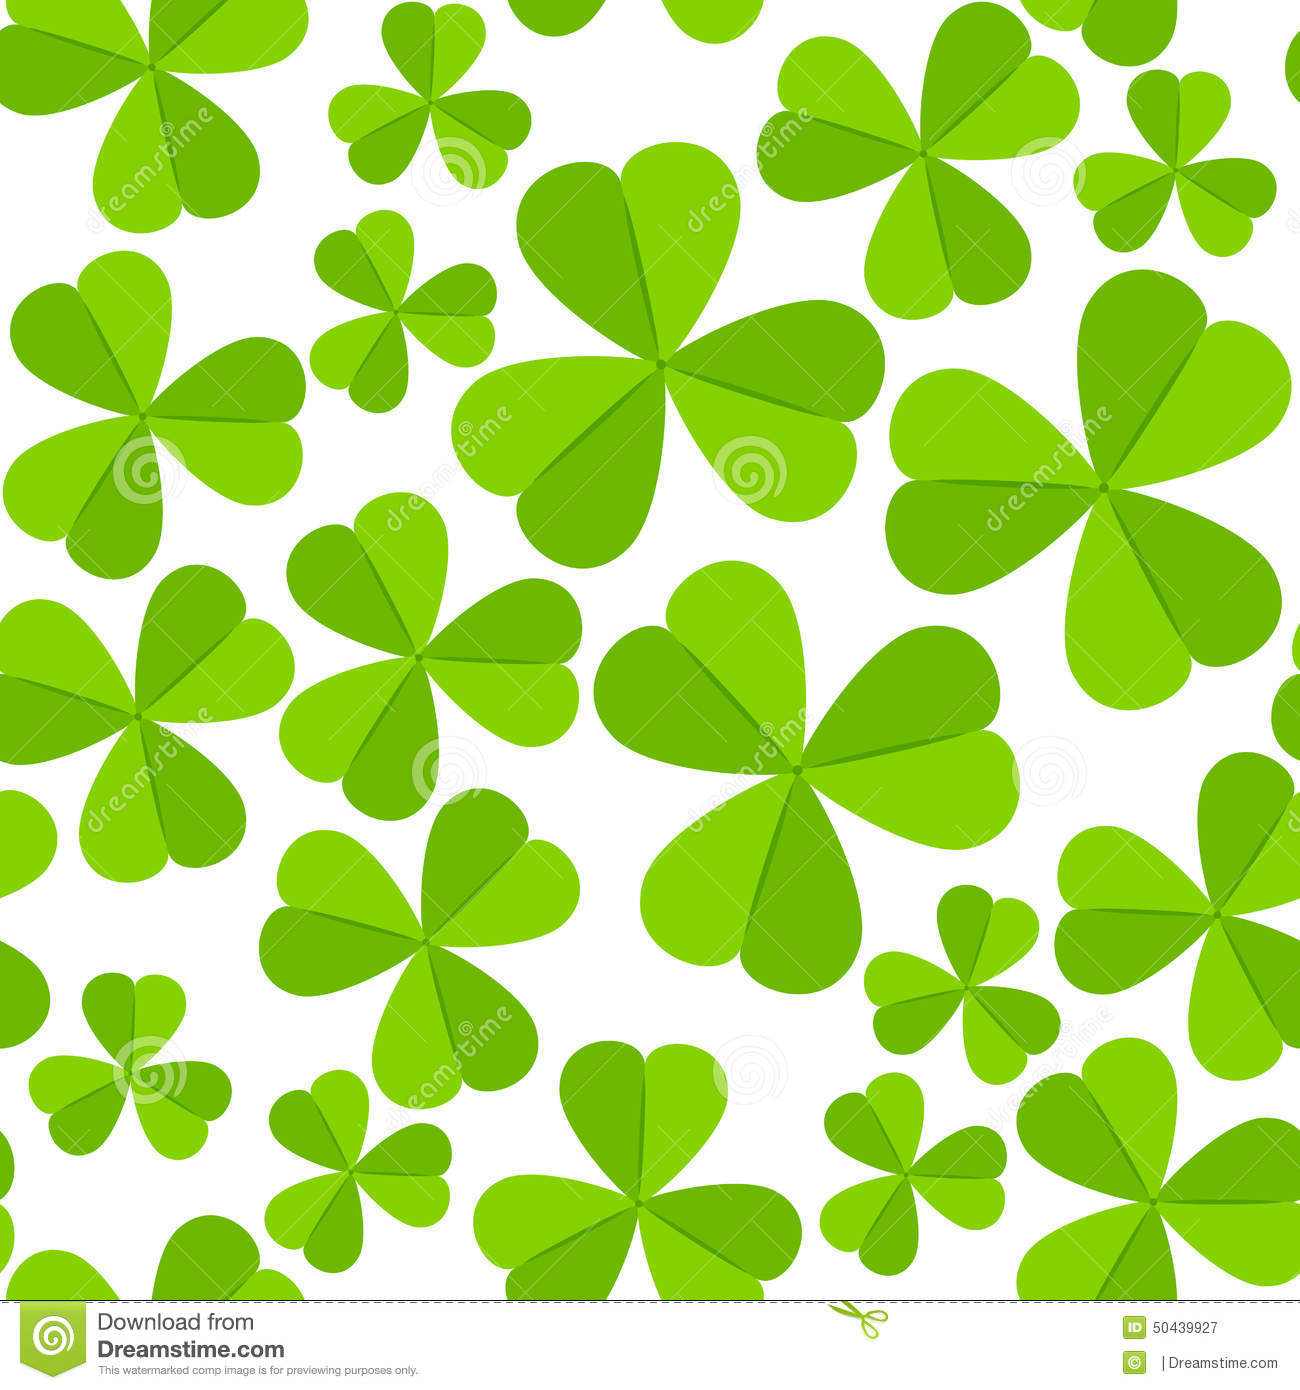 patricks day shamrock background - photo #37